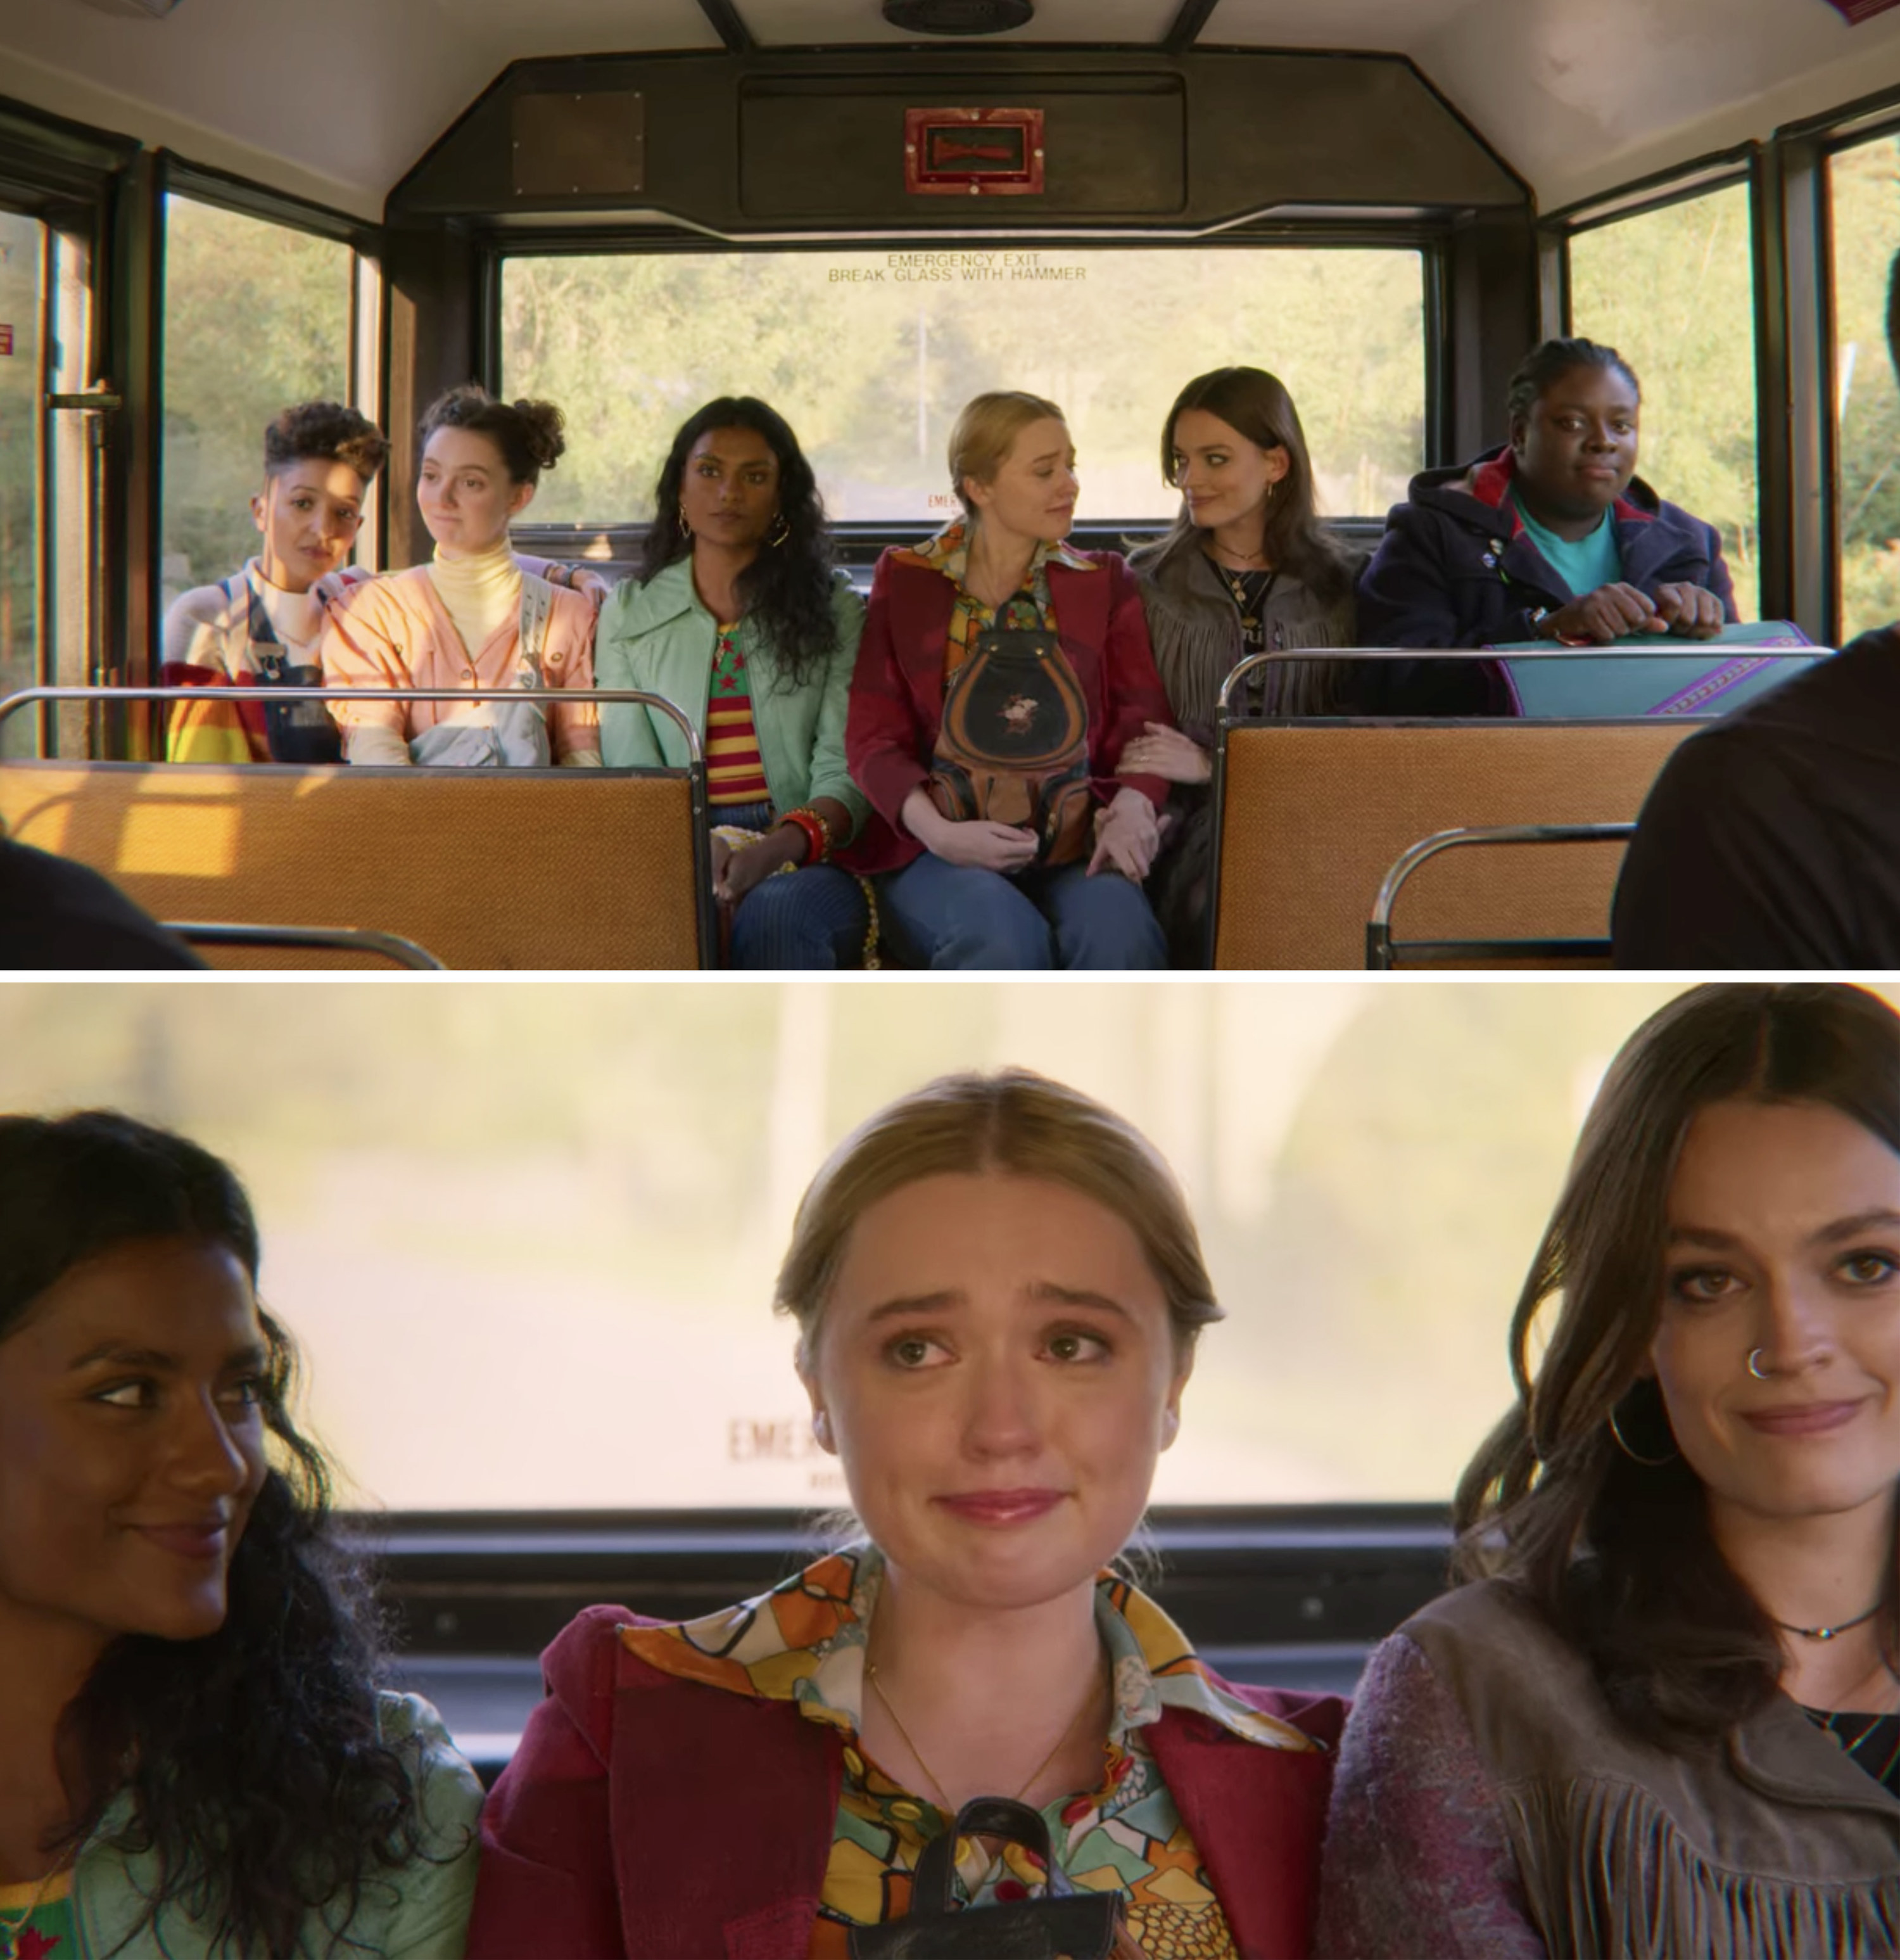 Aimee sitting on the bus with Maeve and their friends